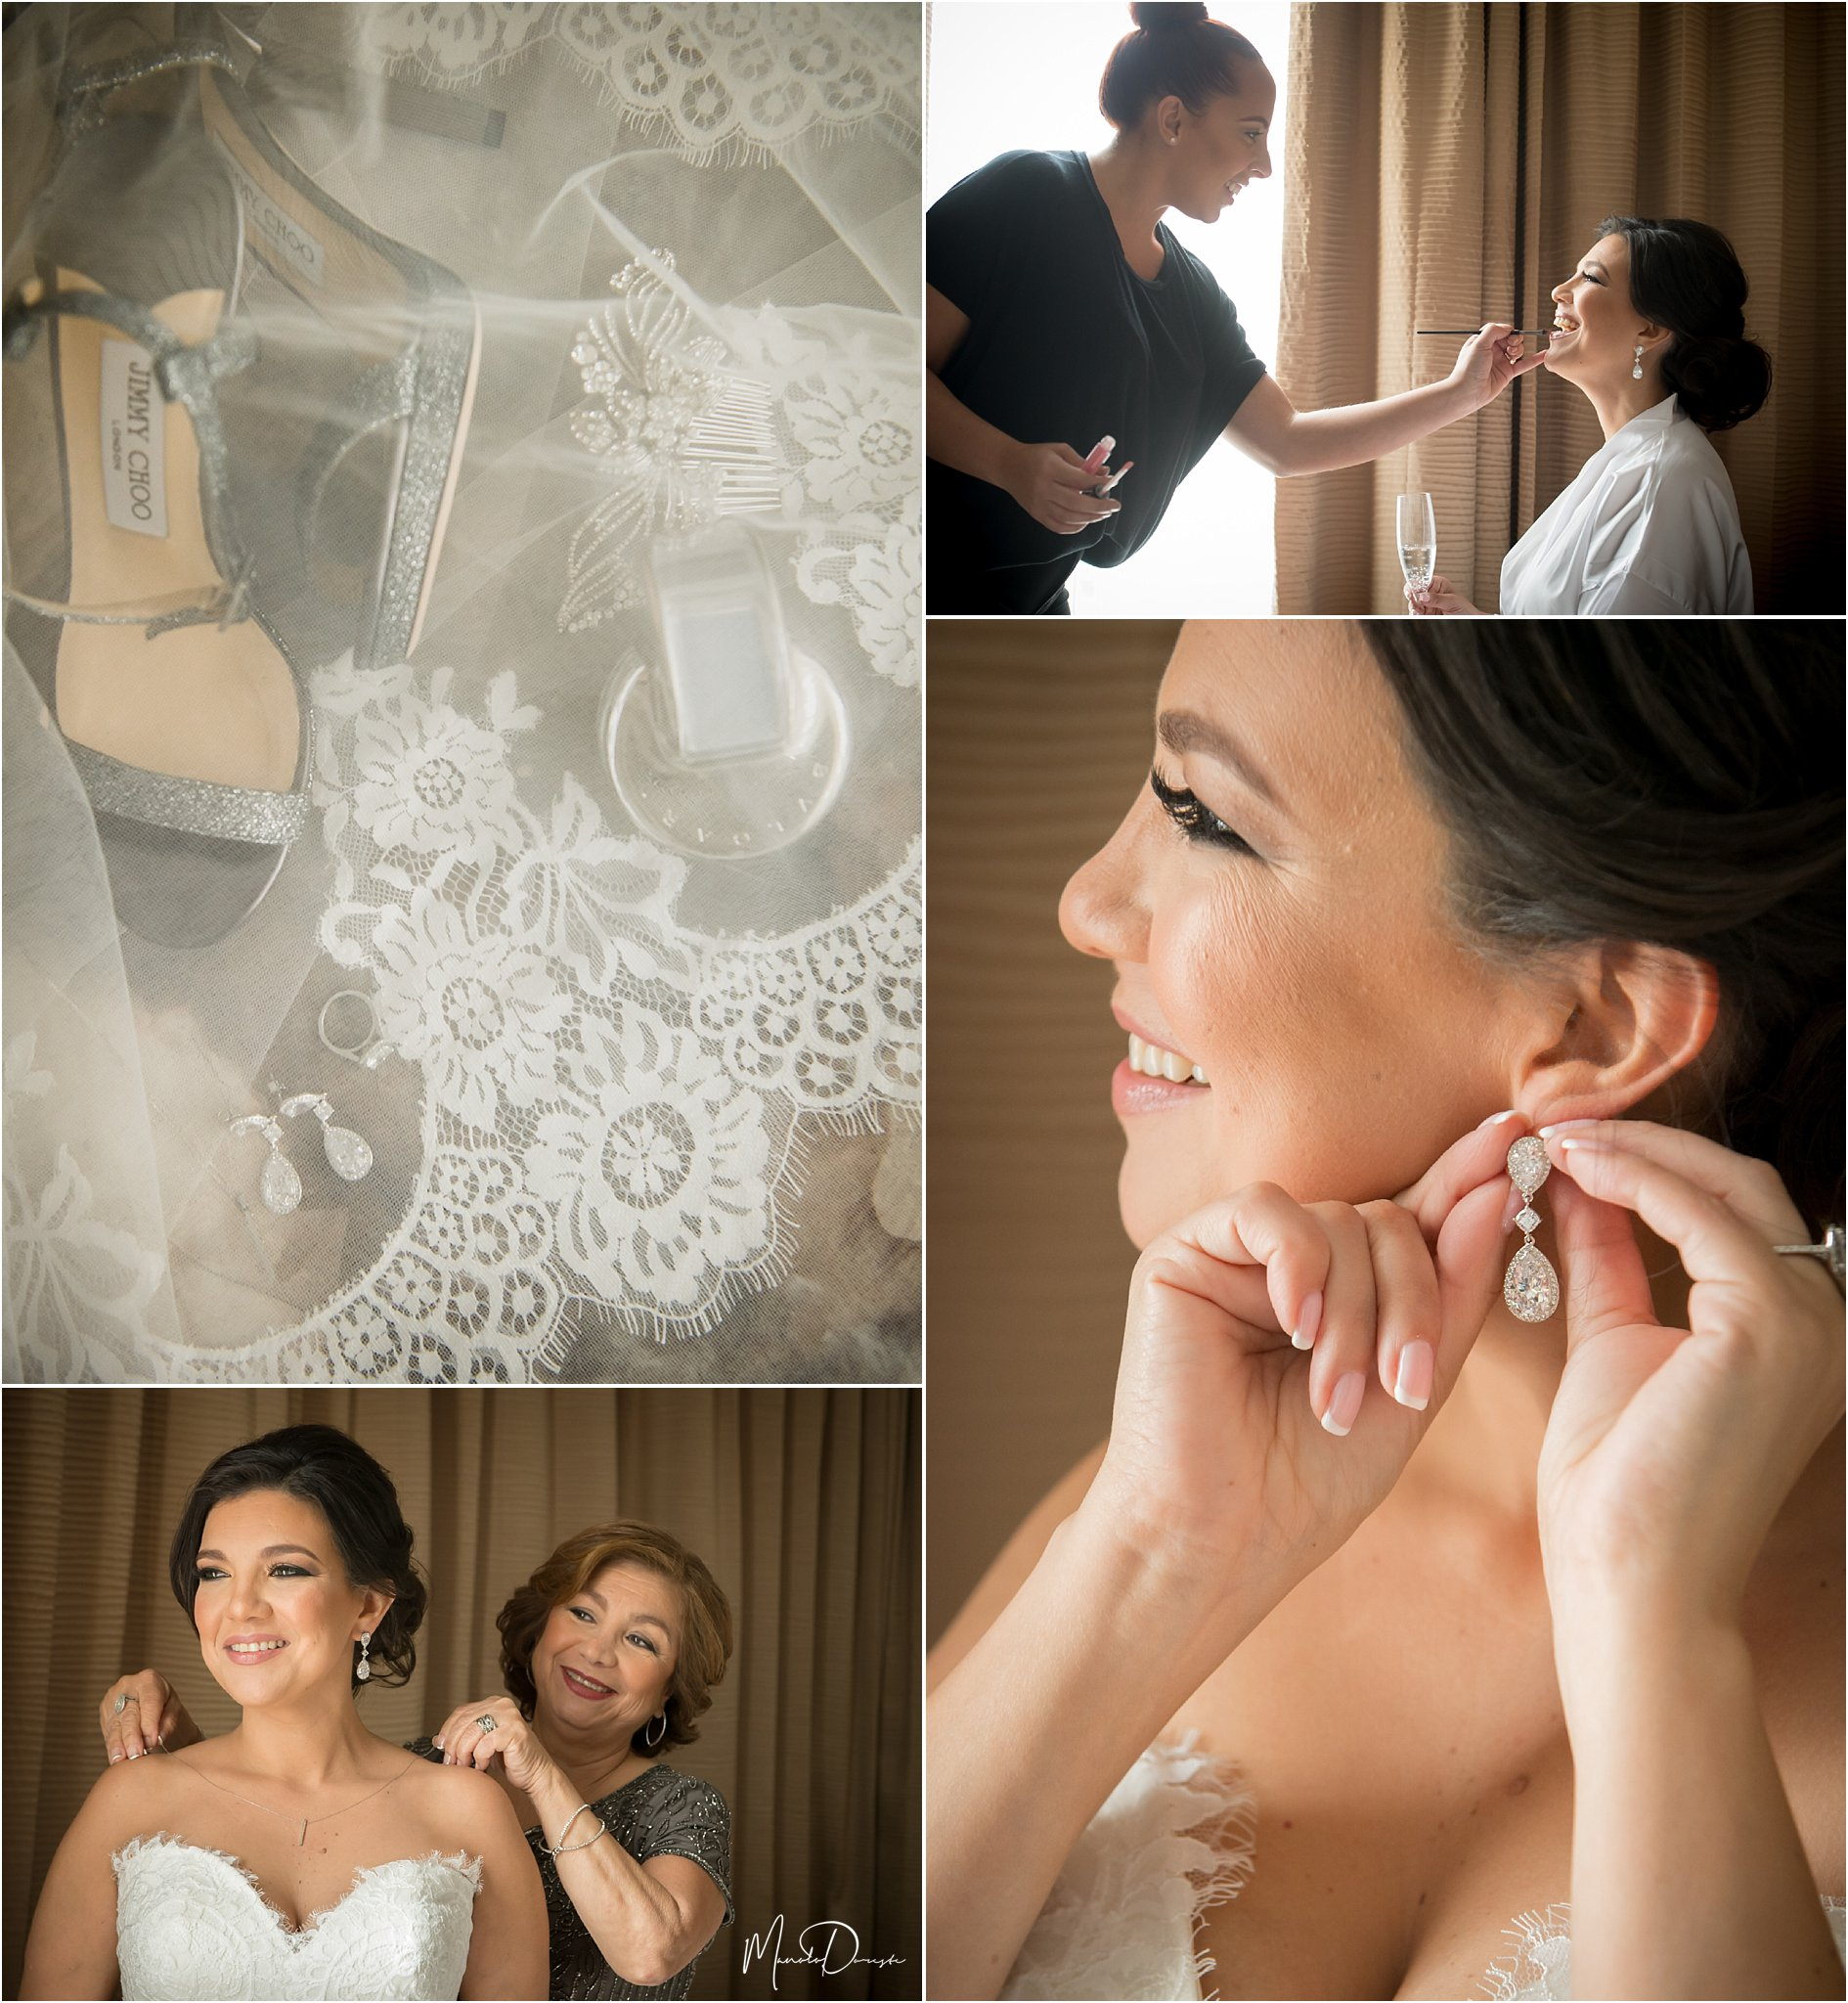 0081_ManoloDoreste_InFocusStudios_Wedding_Family_Photography_Miami_MiamiPhotographer.jpg